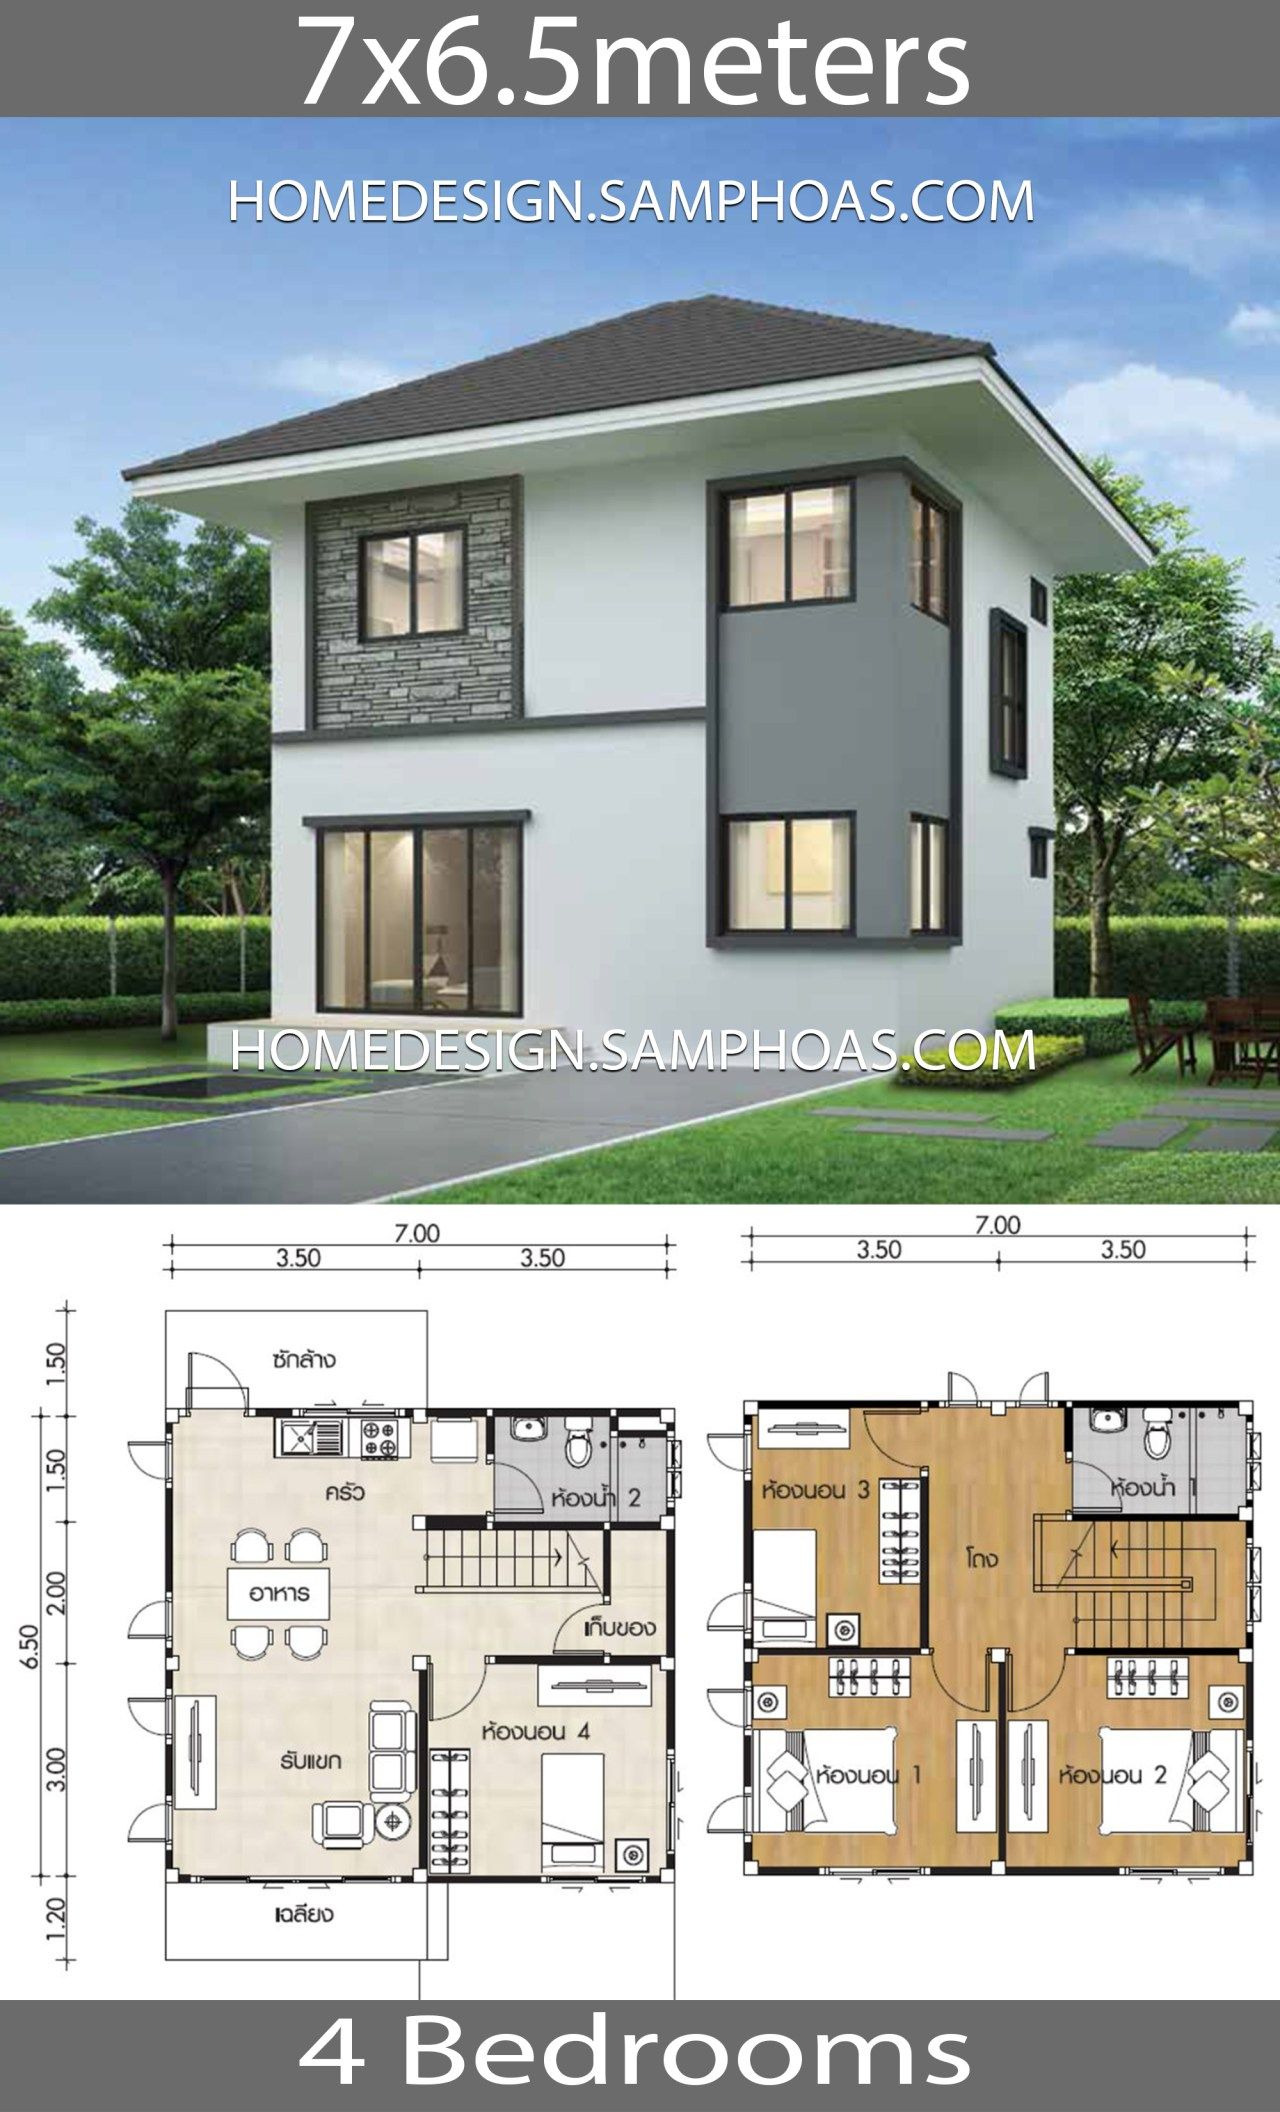 Small Simple House Plans Fresh Small Home Plans 7x6 5m with 4 Bedrooms